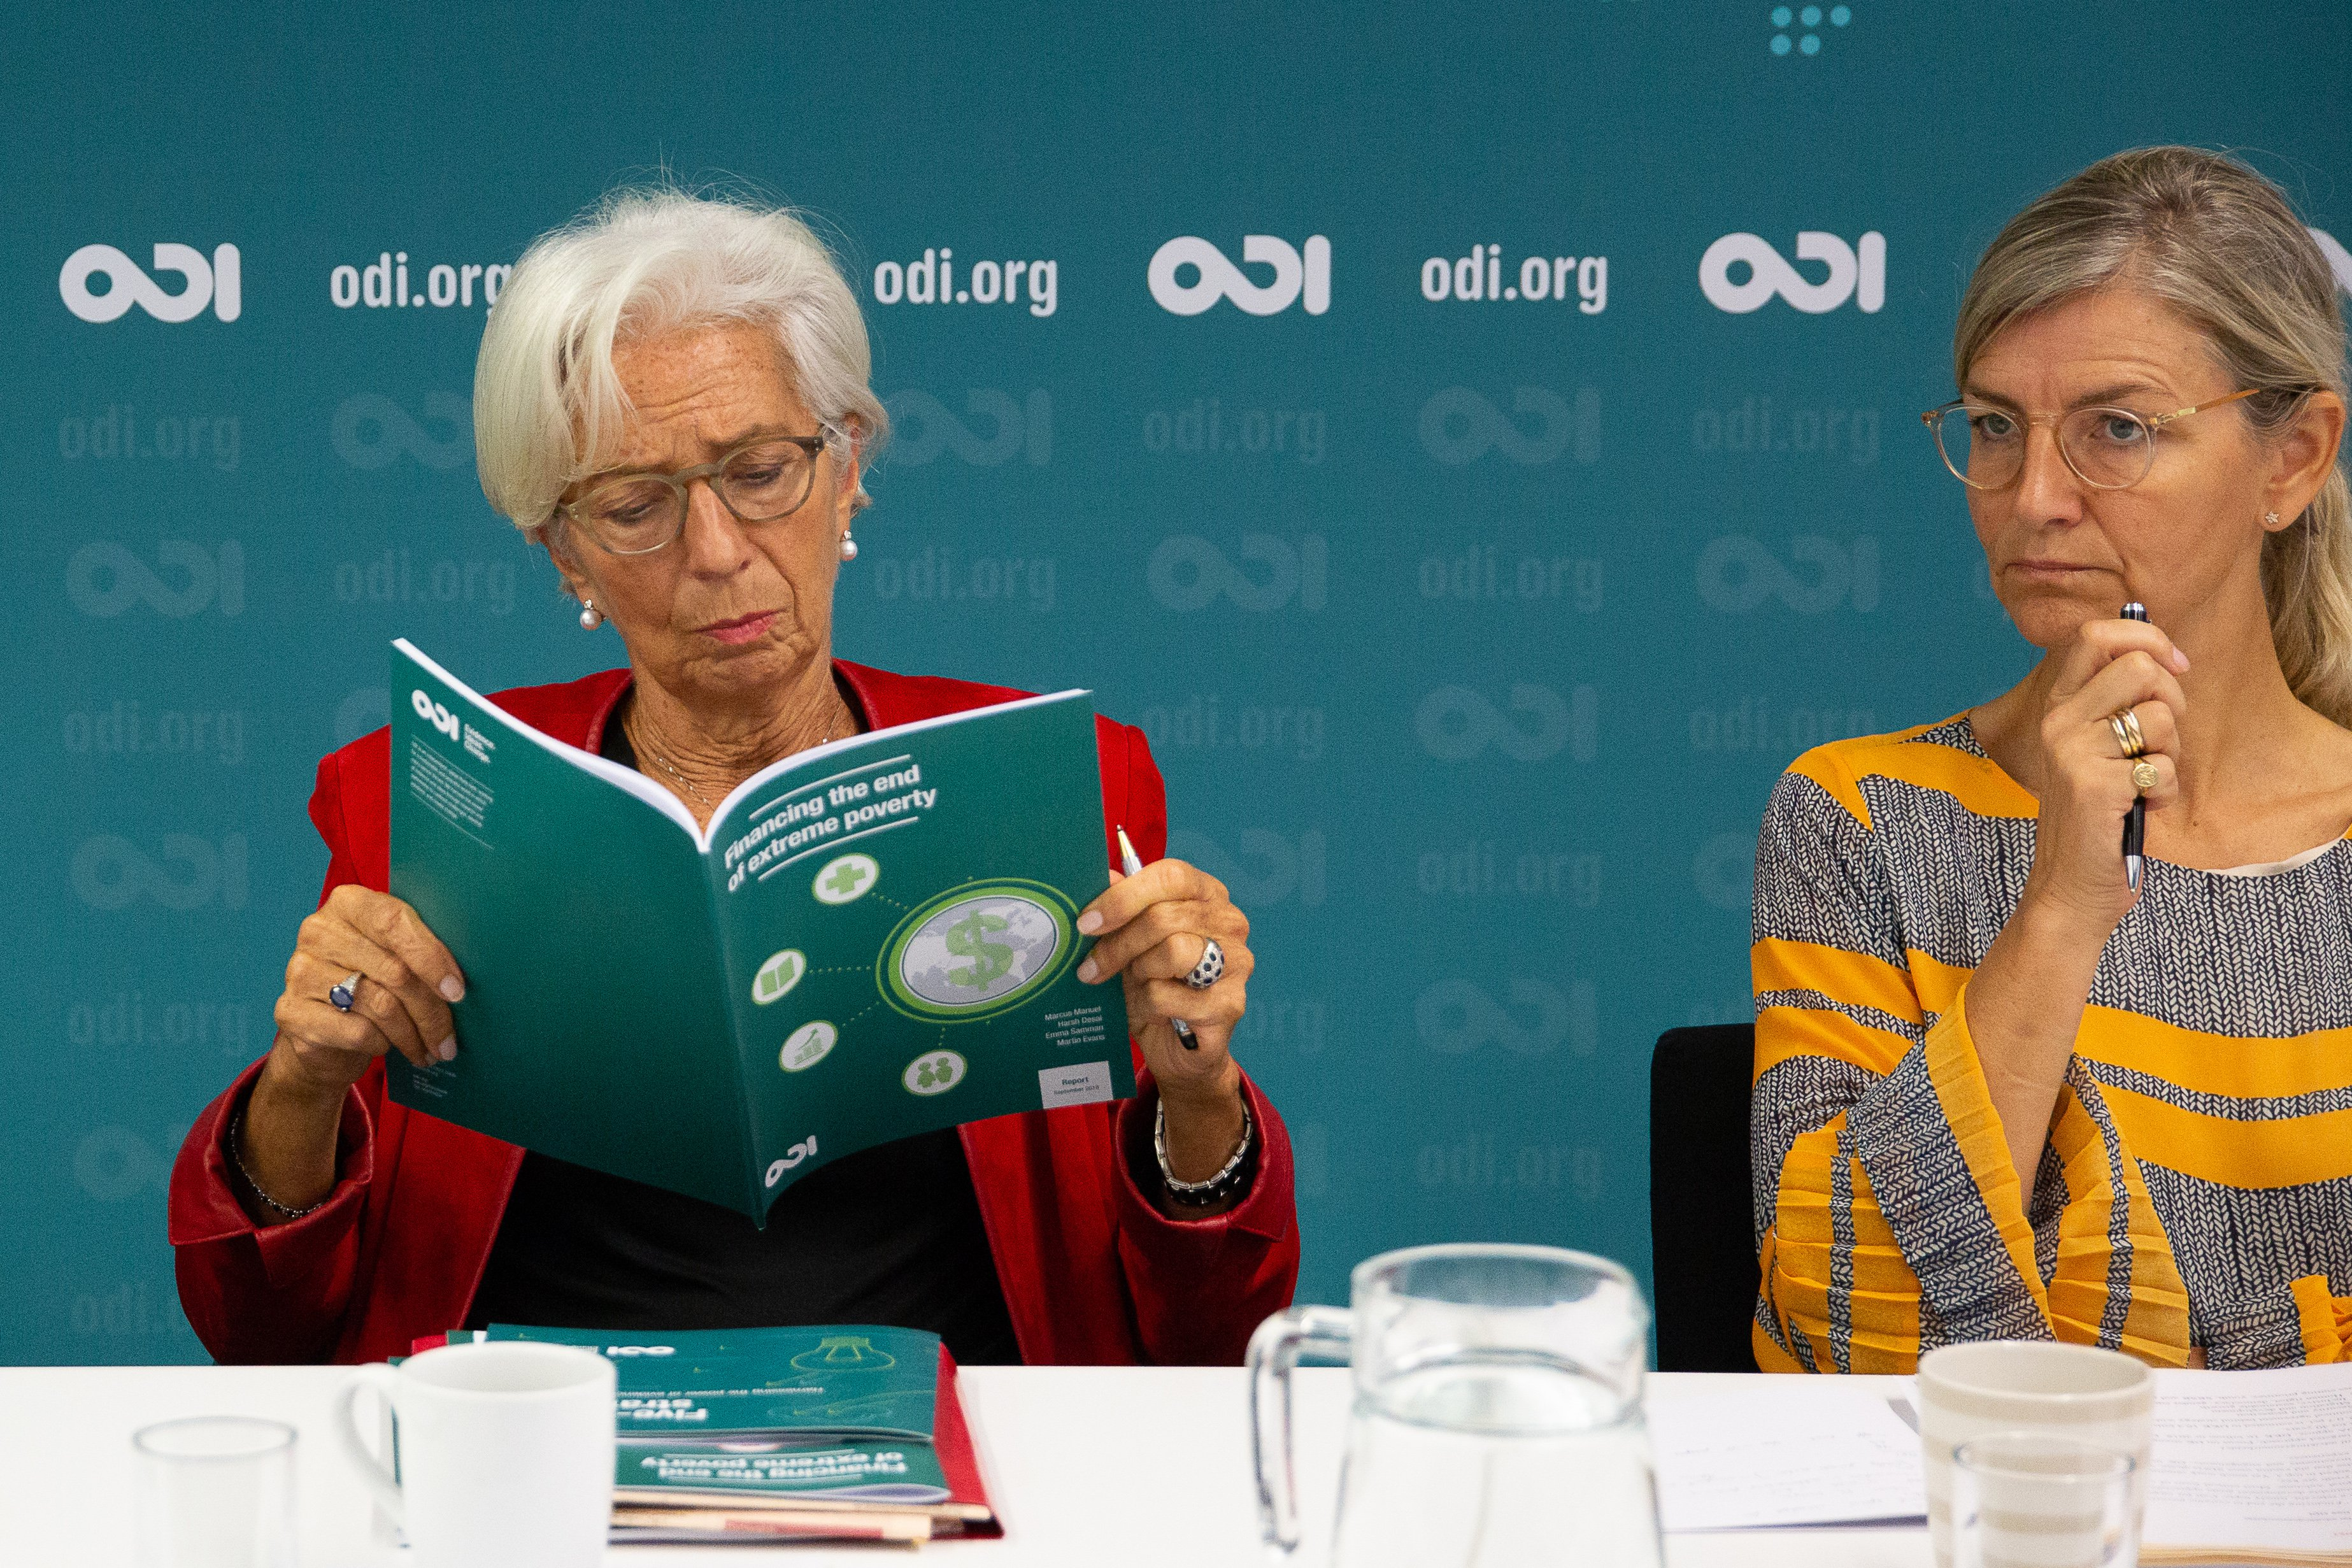 Christine Lagarde, Managing Director of the IMF, reading ODI report at a roundtable event with Ulla Tørnæs, Danish Minister for Development Cooperation